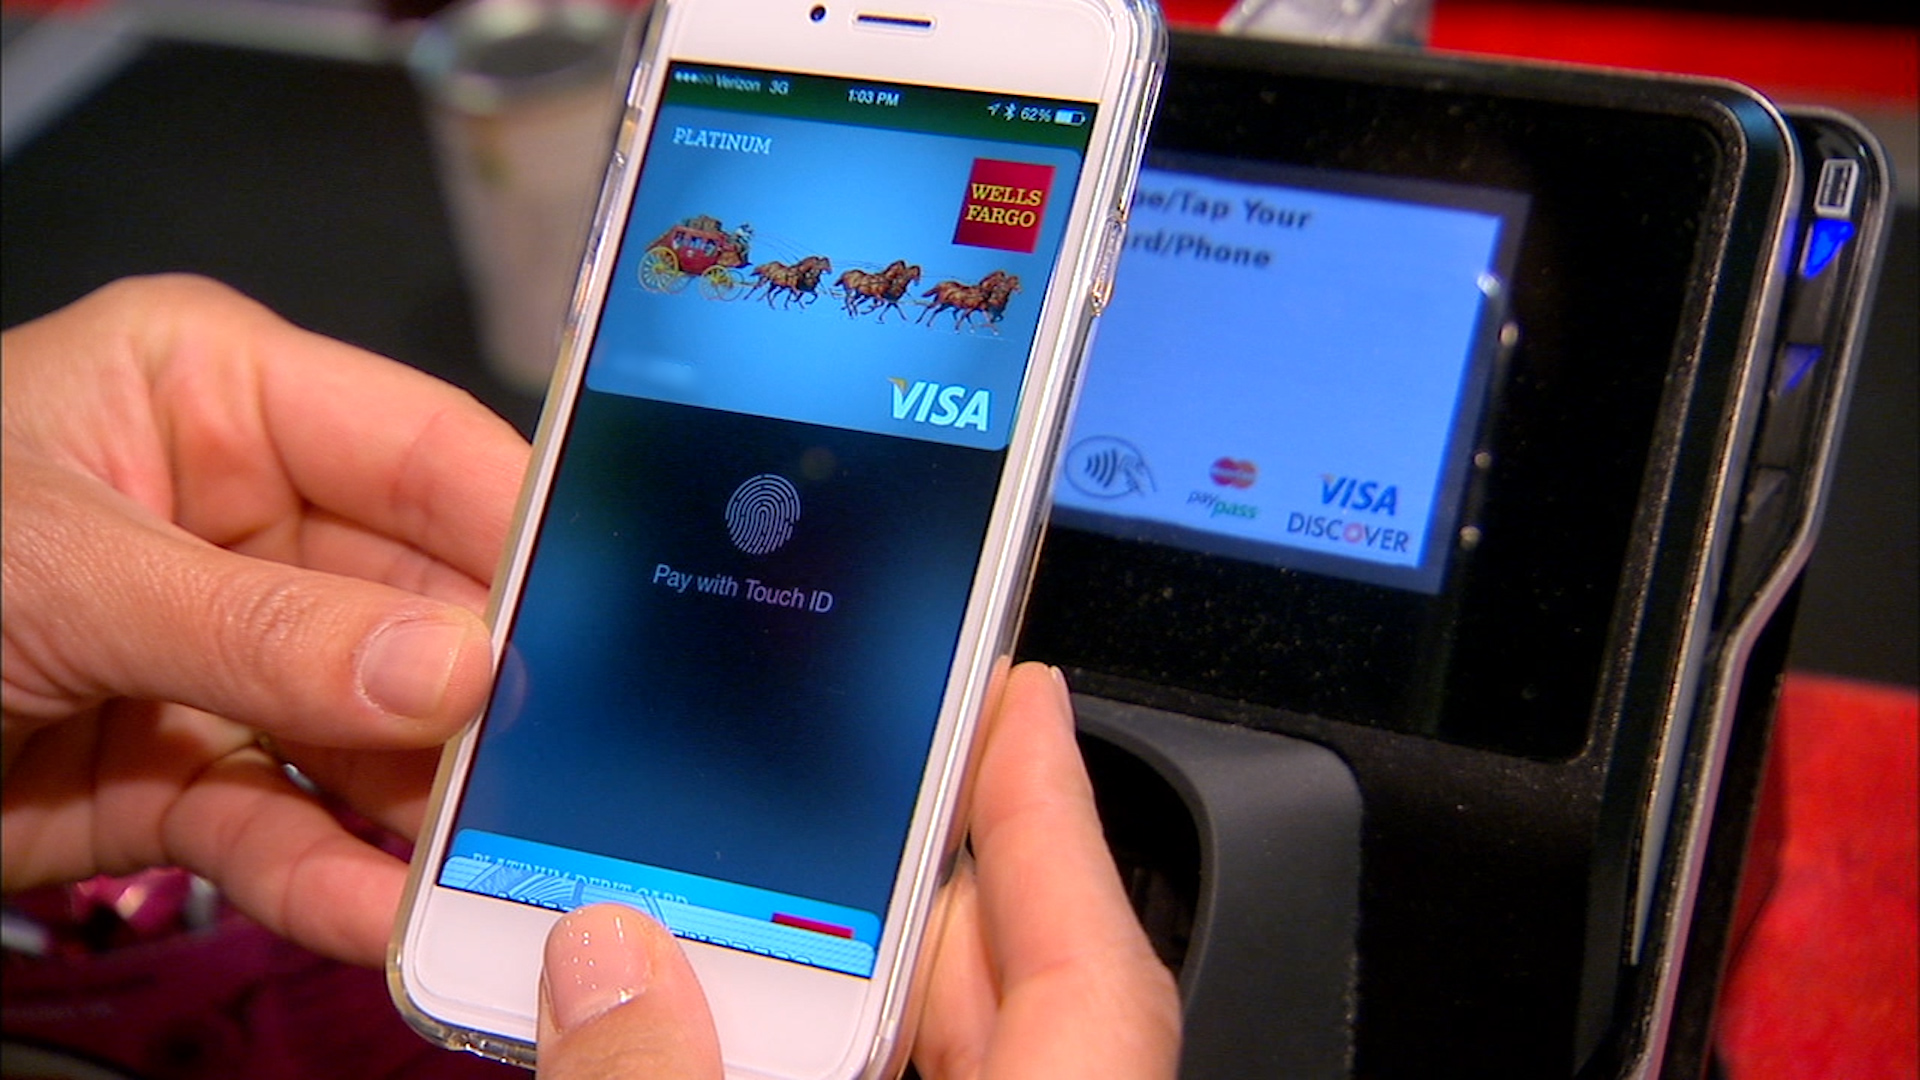 Video: Mobile payment systems making slow progress